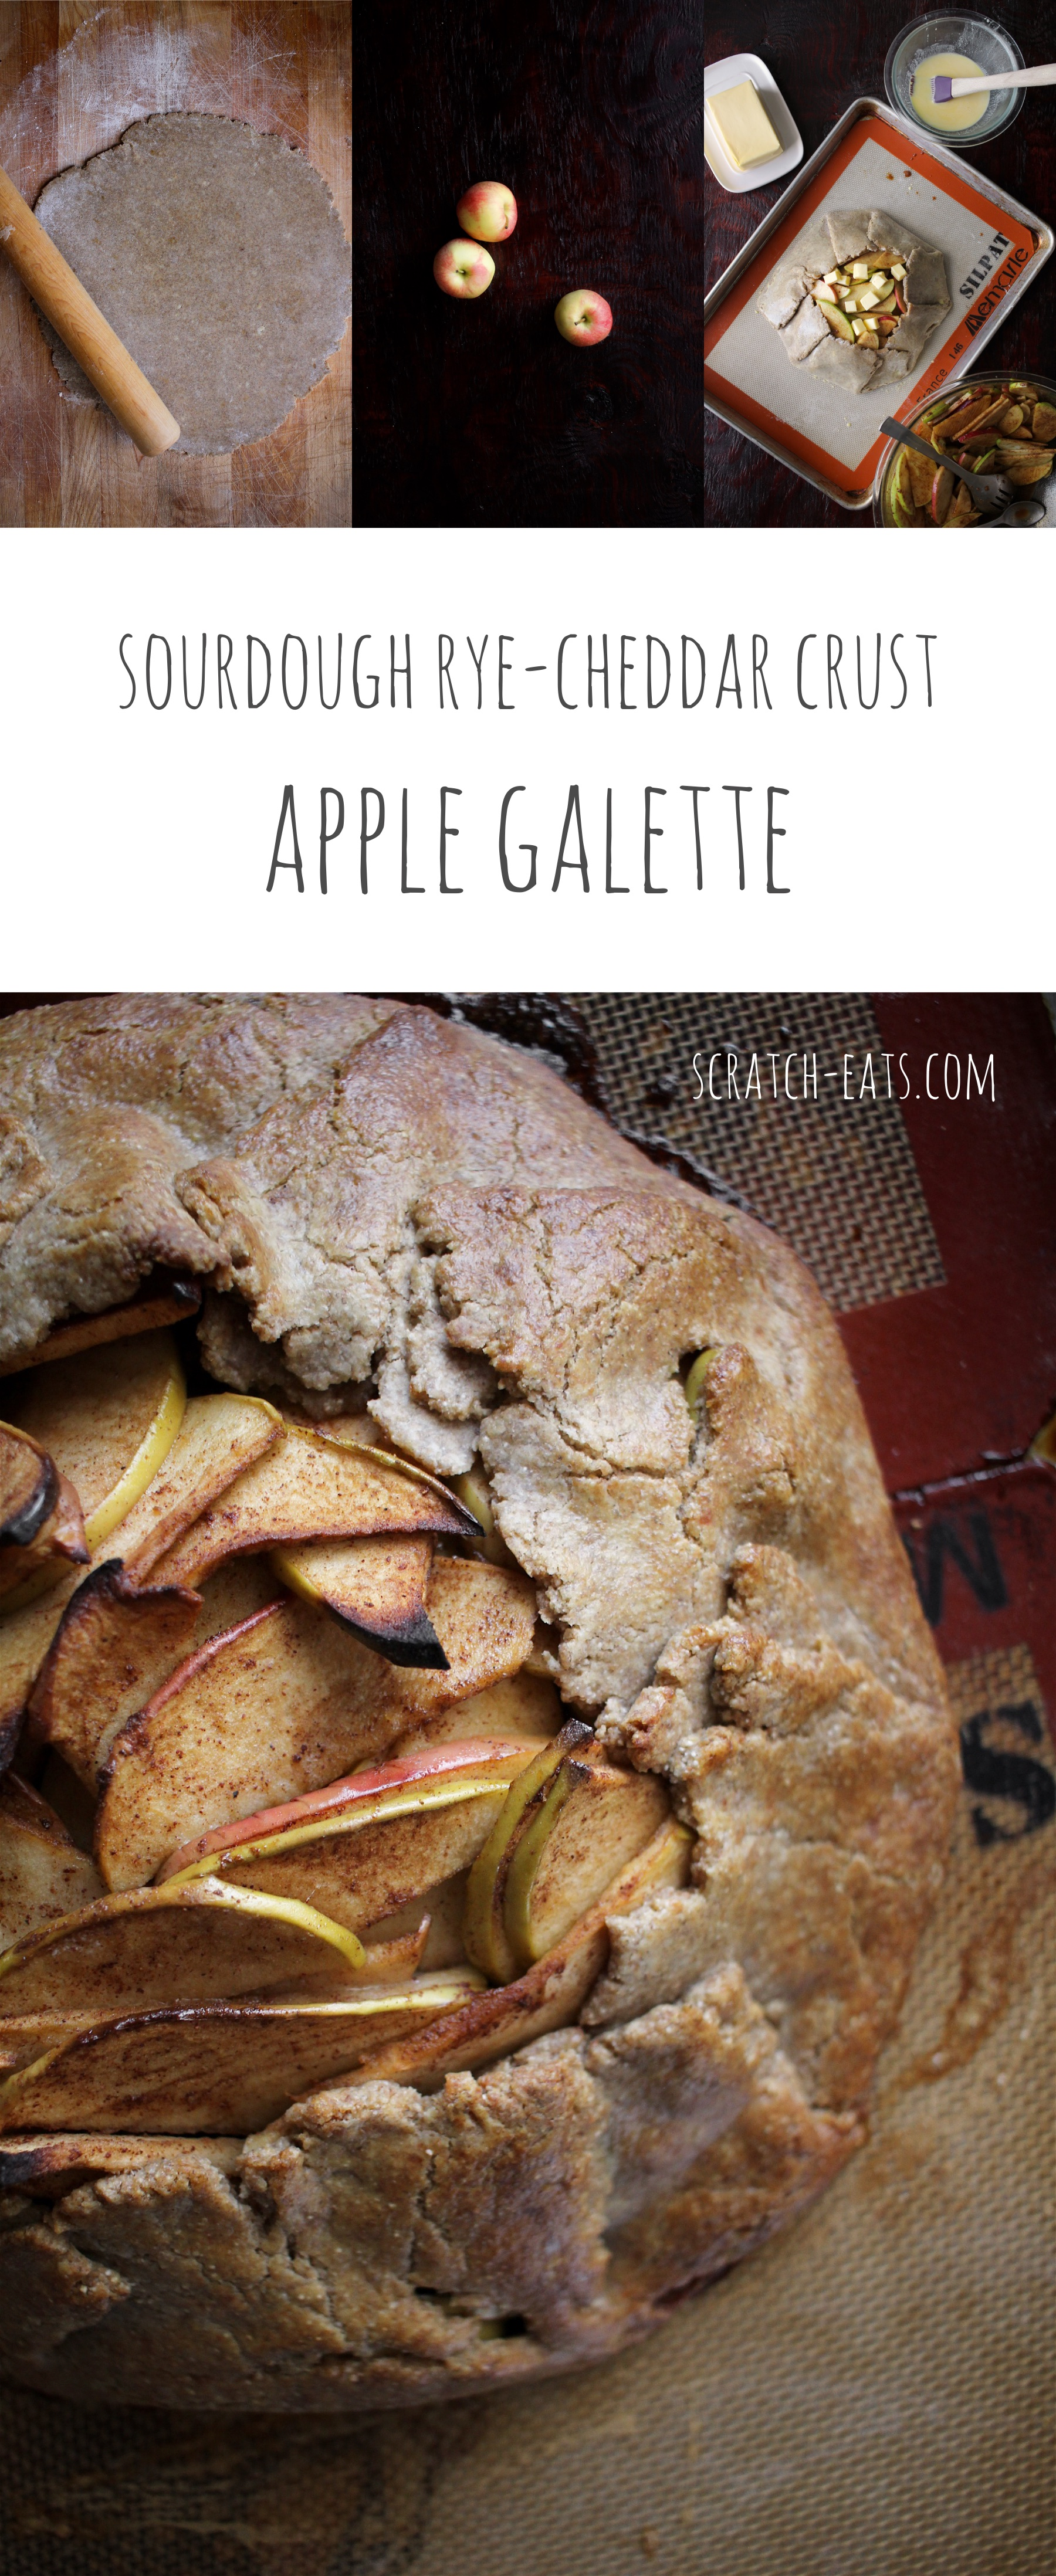 Sourdough Rye-Cheddar Crust Apple Galette